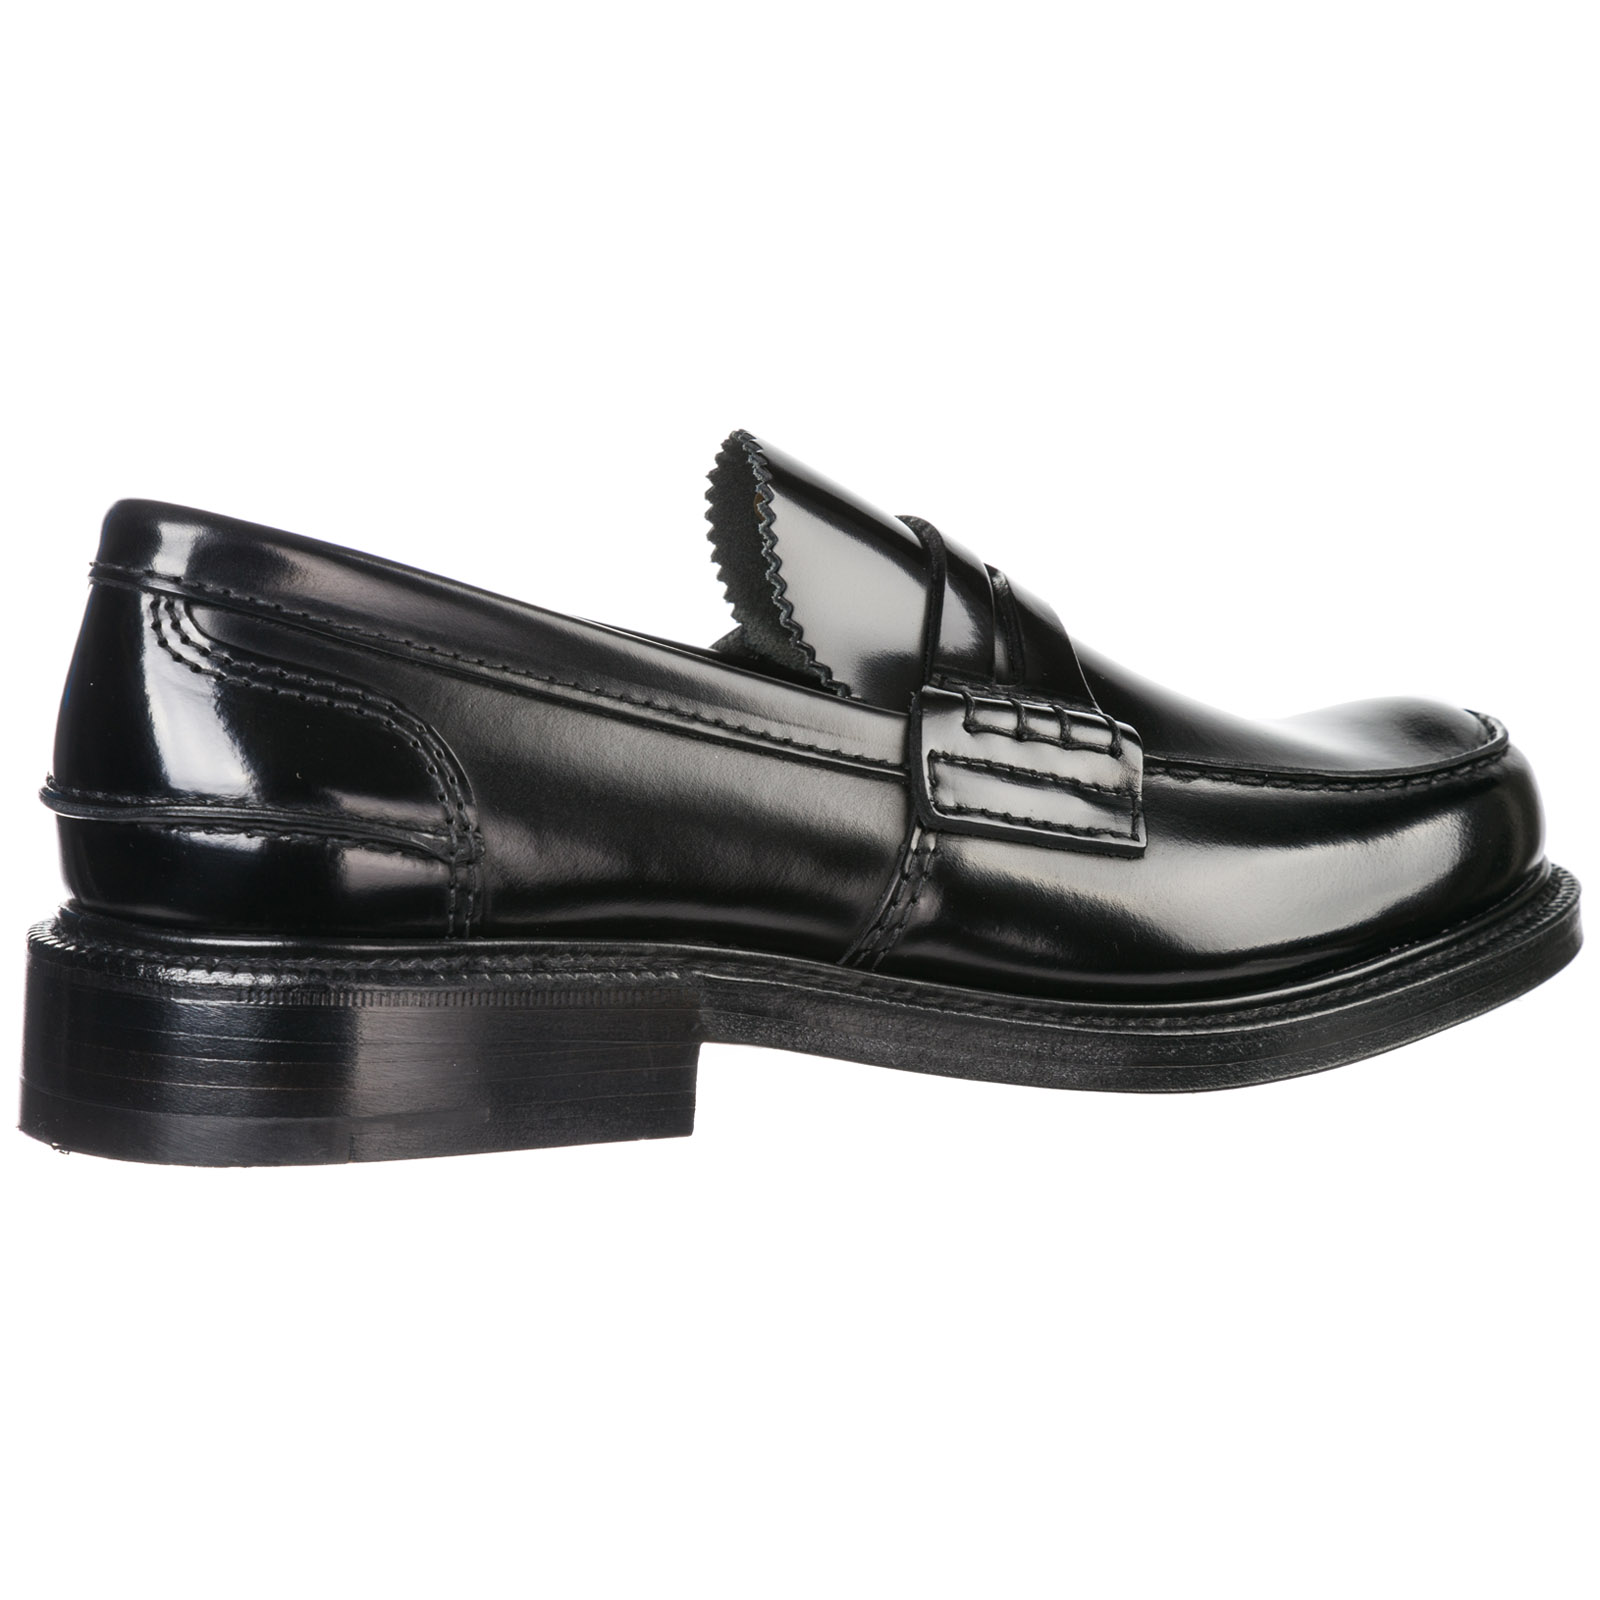 Men's leather loafers moccasins  willenhall